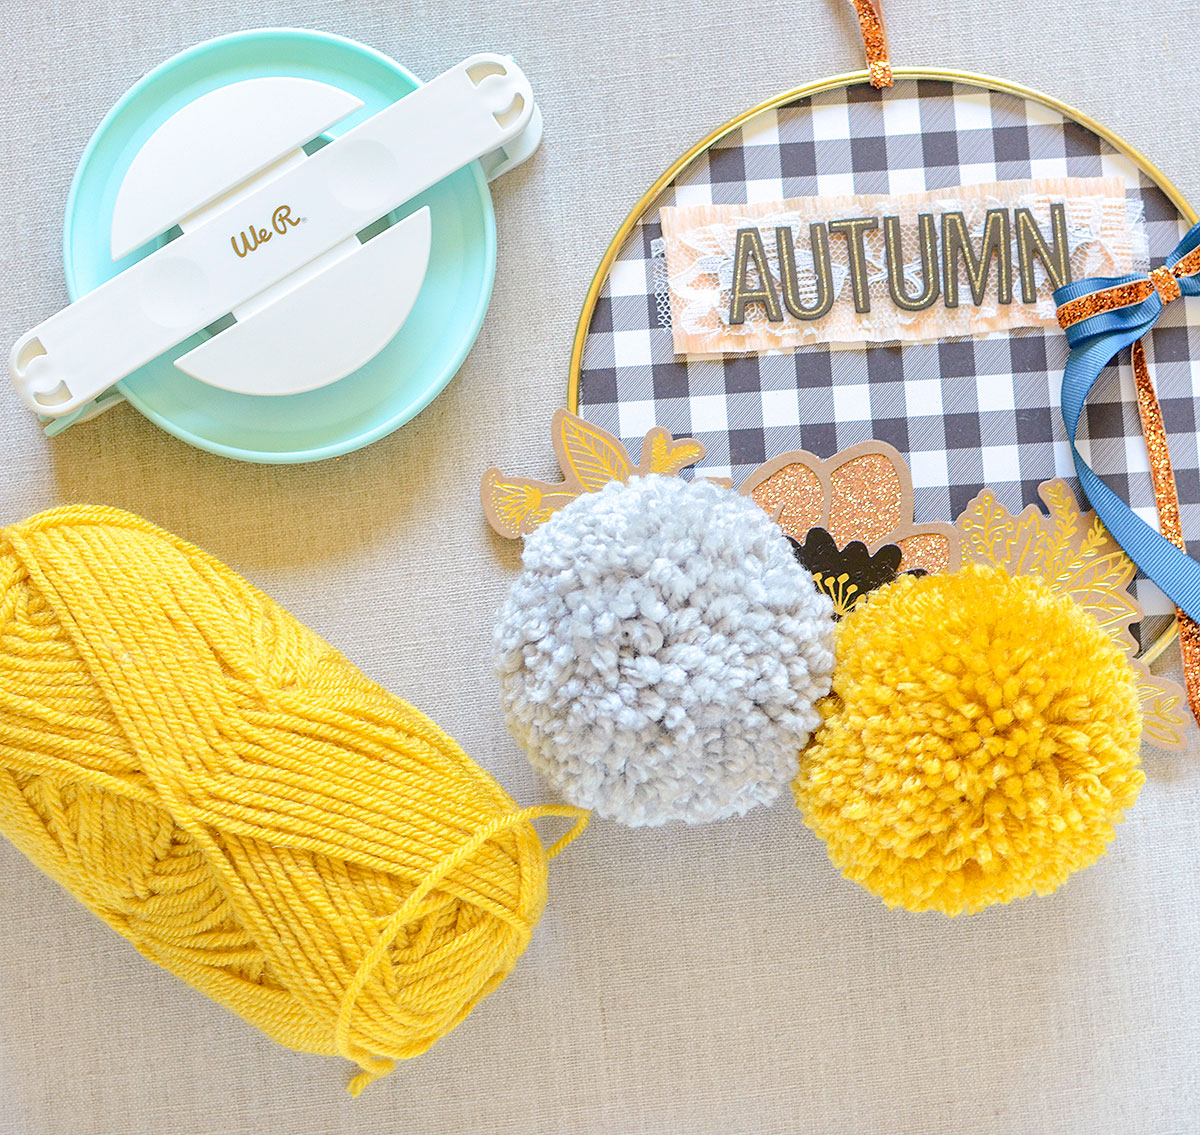 Autumn Hoop by Rebecca Luminaria for We R Memory Keepers featuring the Jumbo Pom Pom Maker